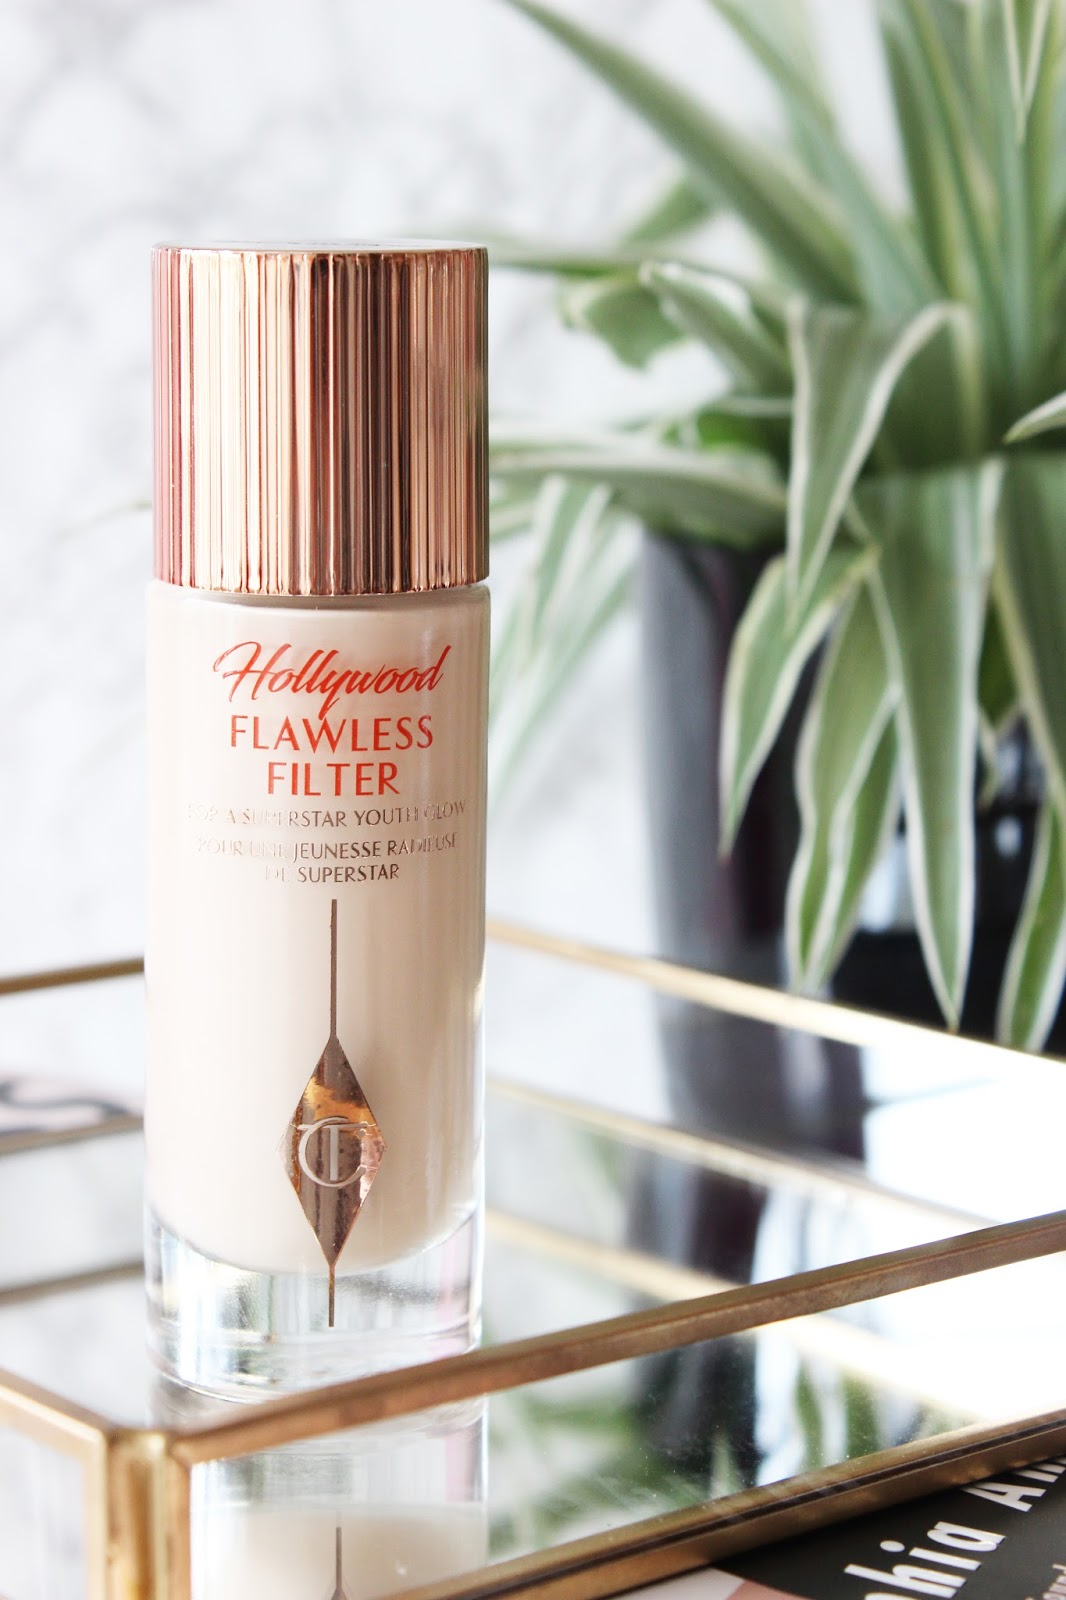 Charlotte Tilbury Hollywood Flawless Filter | Review & Swatches